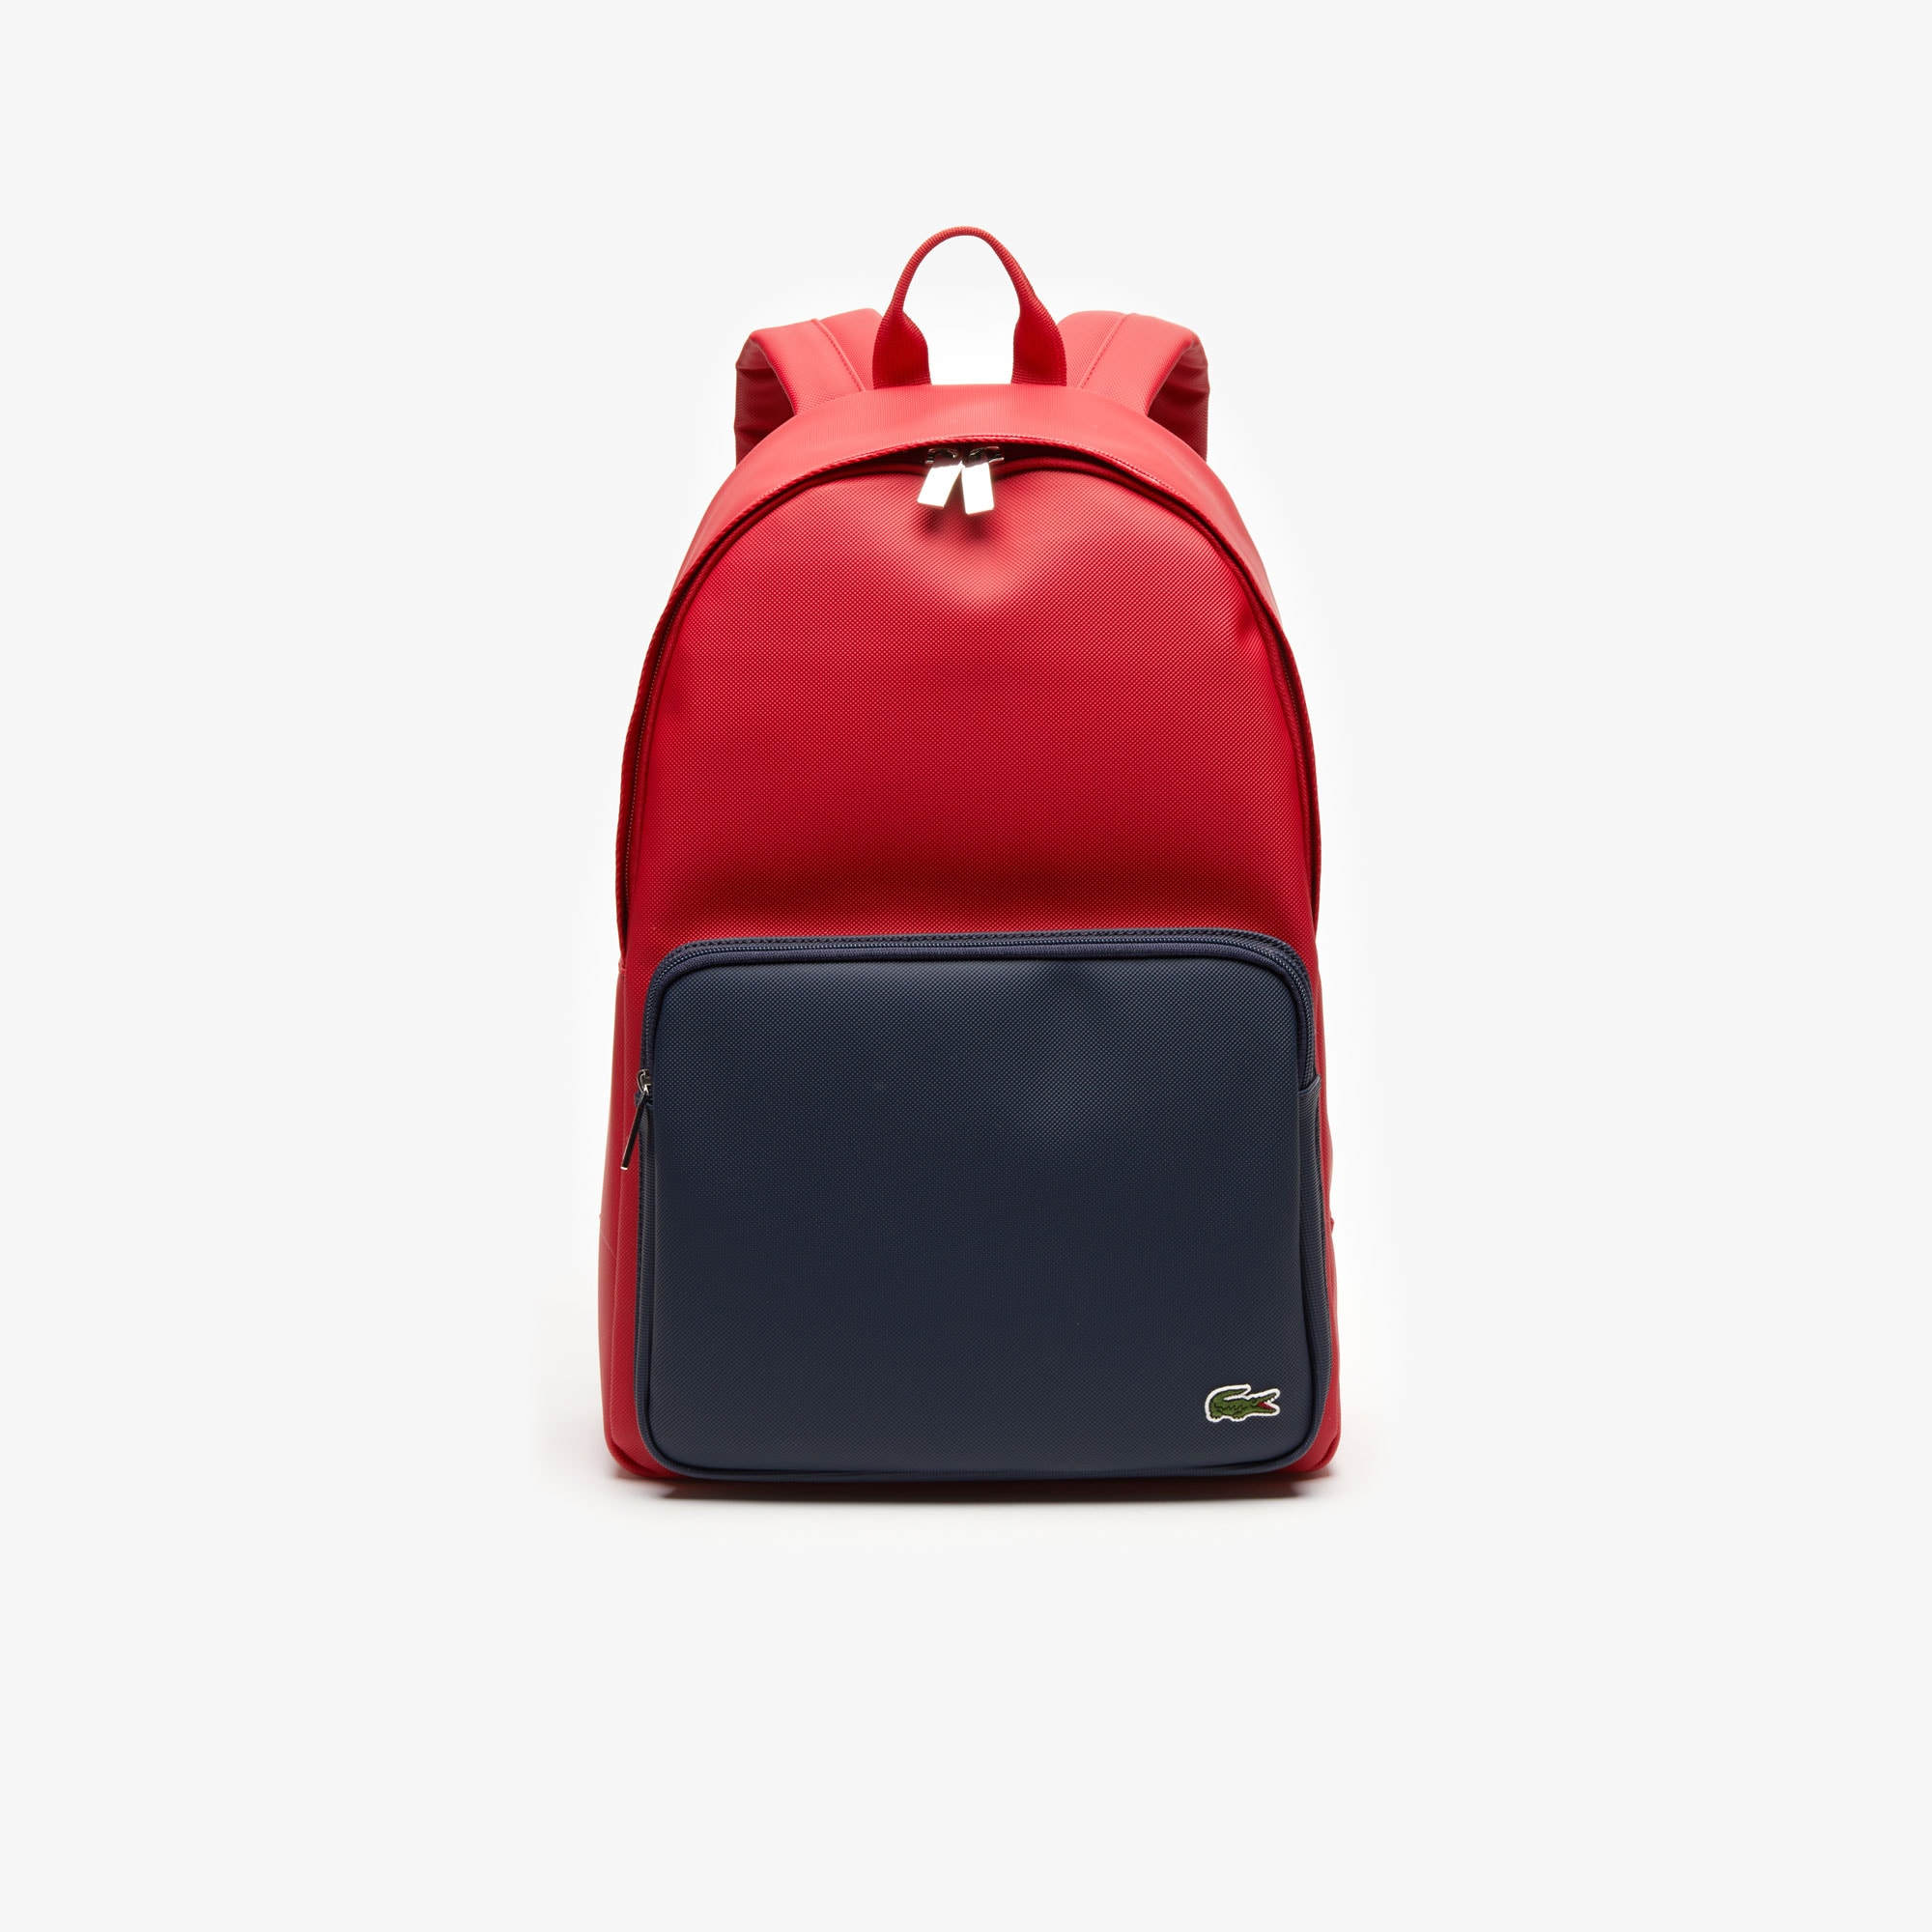 Men's Bicolor Backpack